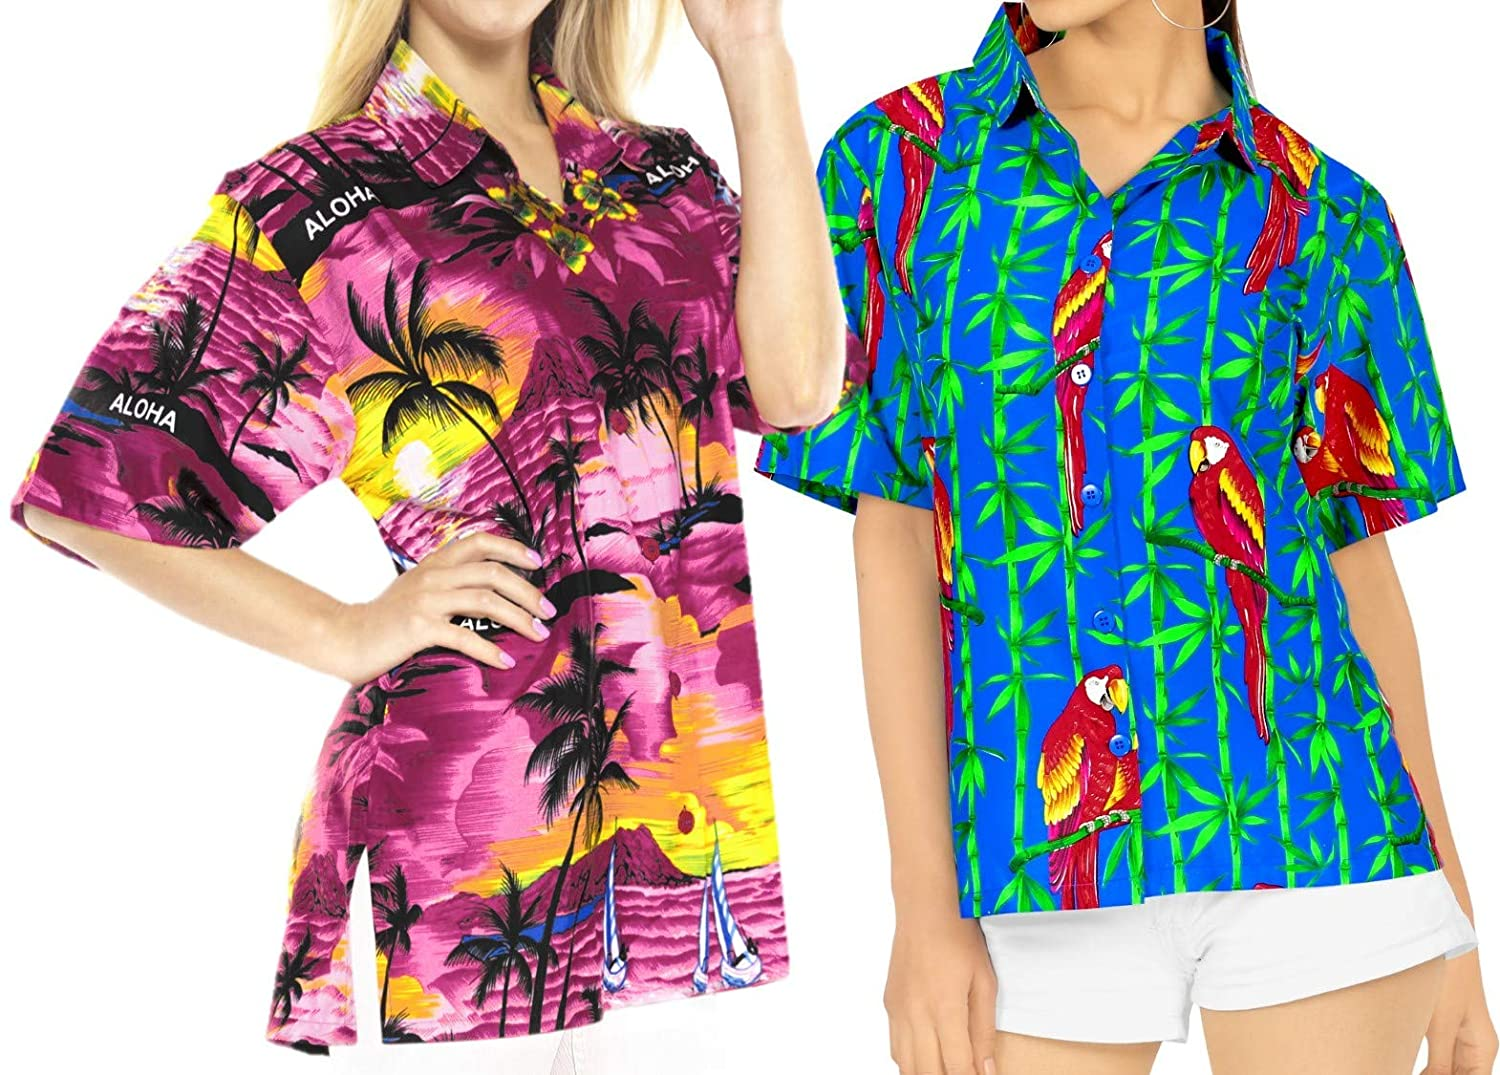 LA LEELA Women's Swim Hawaiian Shirt Tank Tunic Blouse Tops Cover Up L Work from Home Clothes Women Blouse Pack of 2